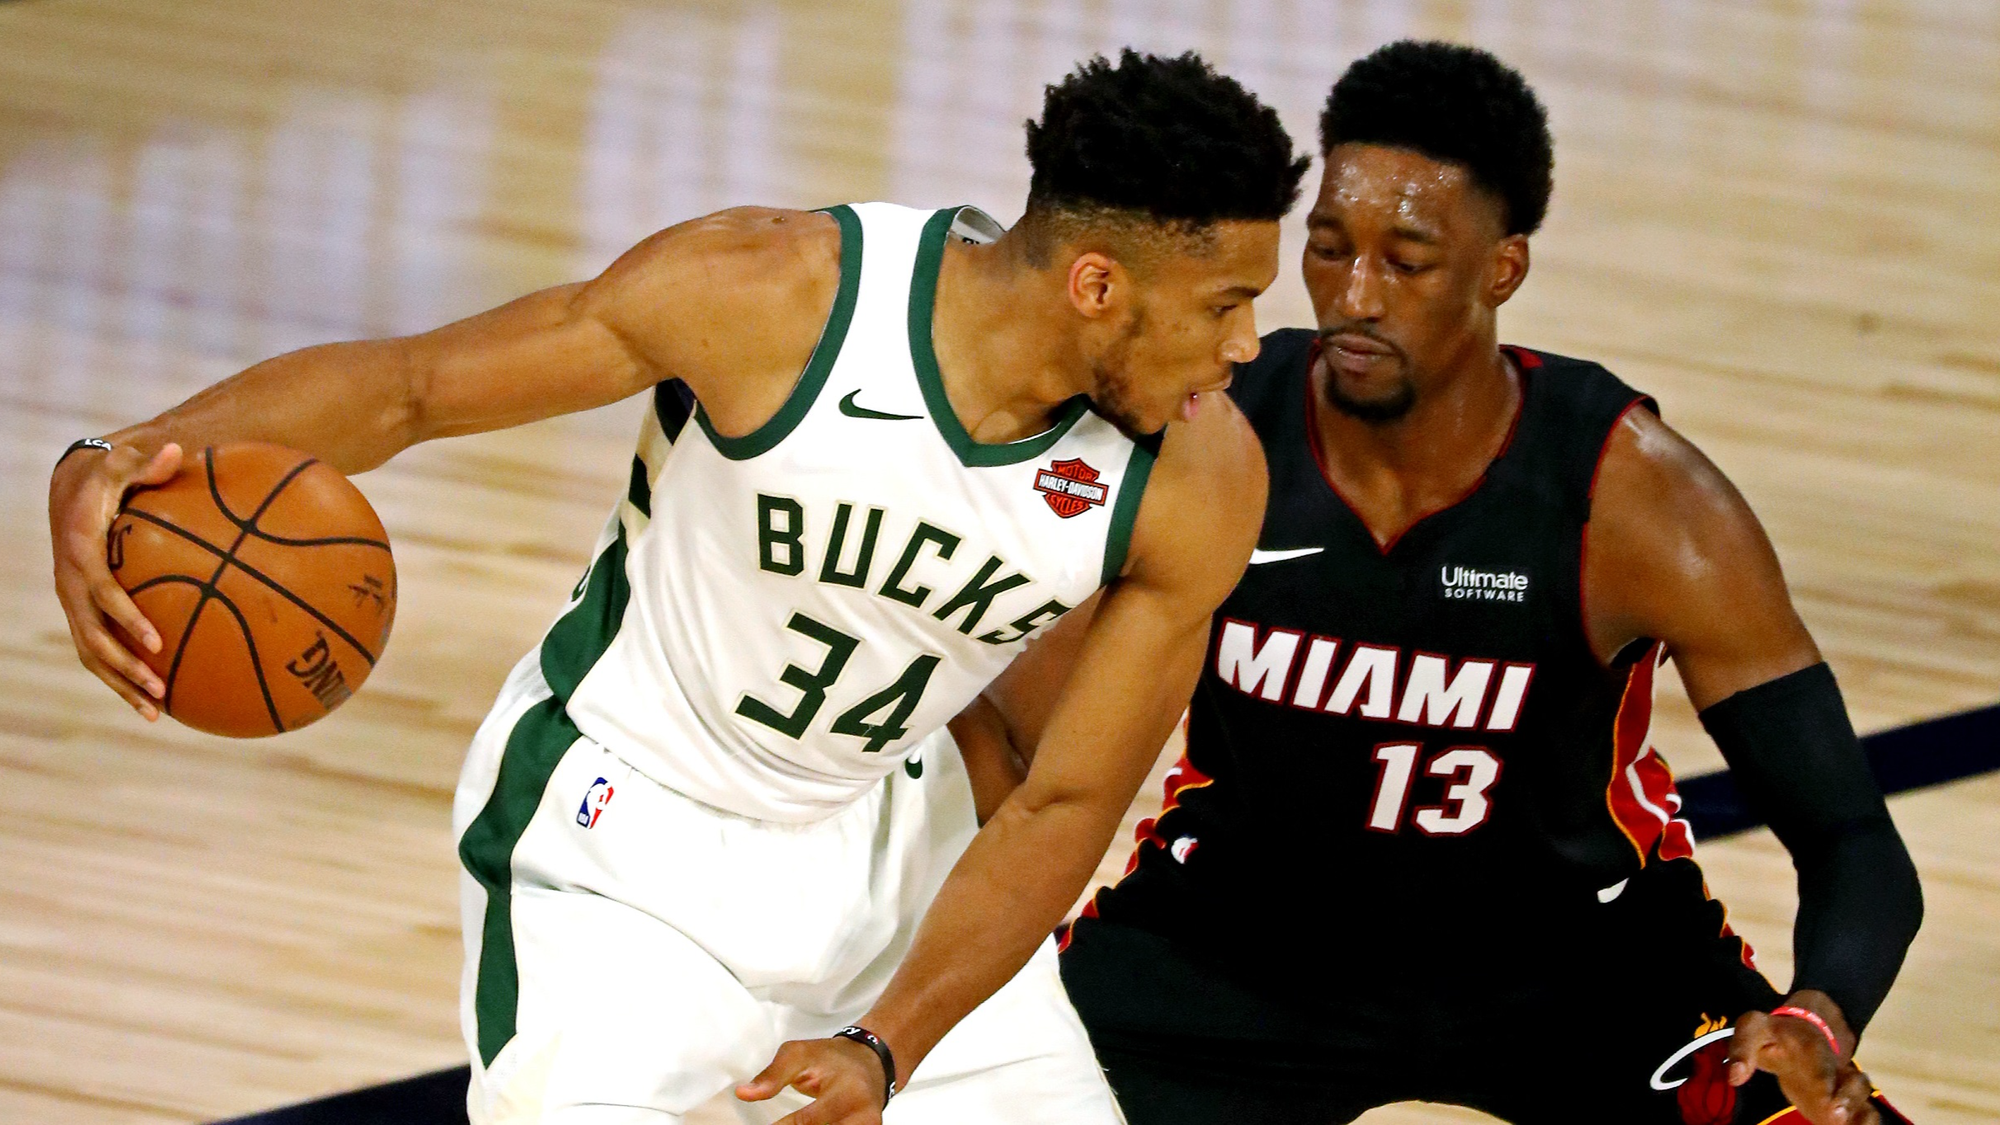 Sep 4, 2020; Lake Buena Vista, Florida, USA; Milwaukee Bucks forward Giannis Antetokounmpo (34) handles the ball against Miami Heat forward Bam Adebayo (13) during the first quarter in game three of the second round of the 2020 NBA Playoffs at ESPN Wide World of Sports Complex. Mandatory Credit: Kim Klement-USA TODAY Sports